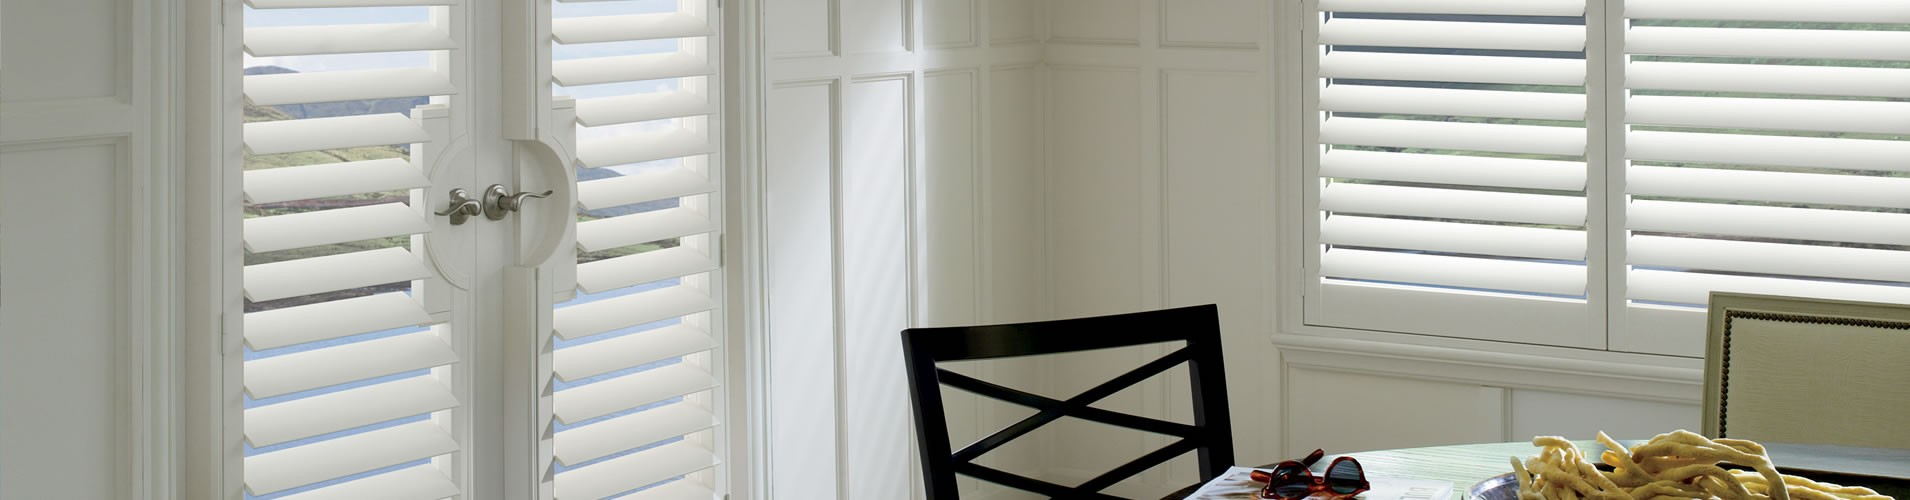 Houston Plantation Shutters, Texas